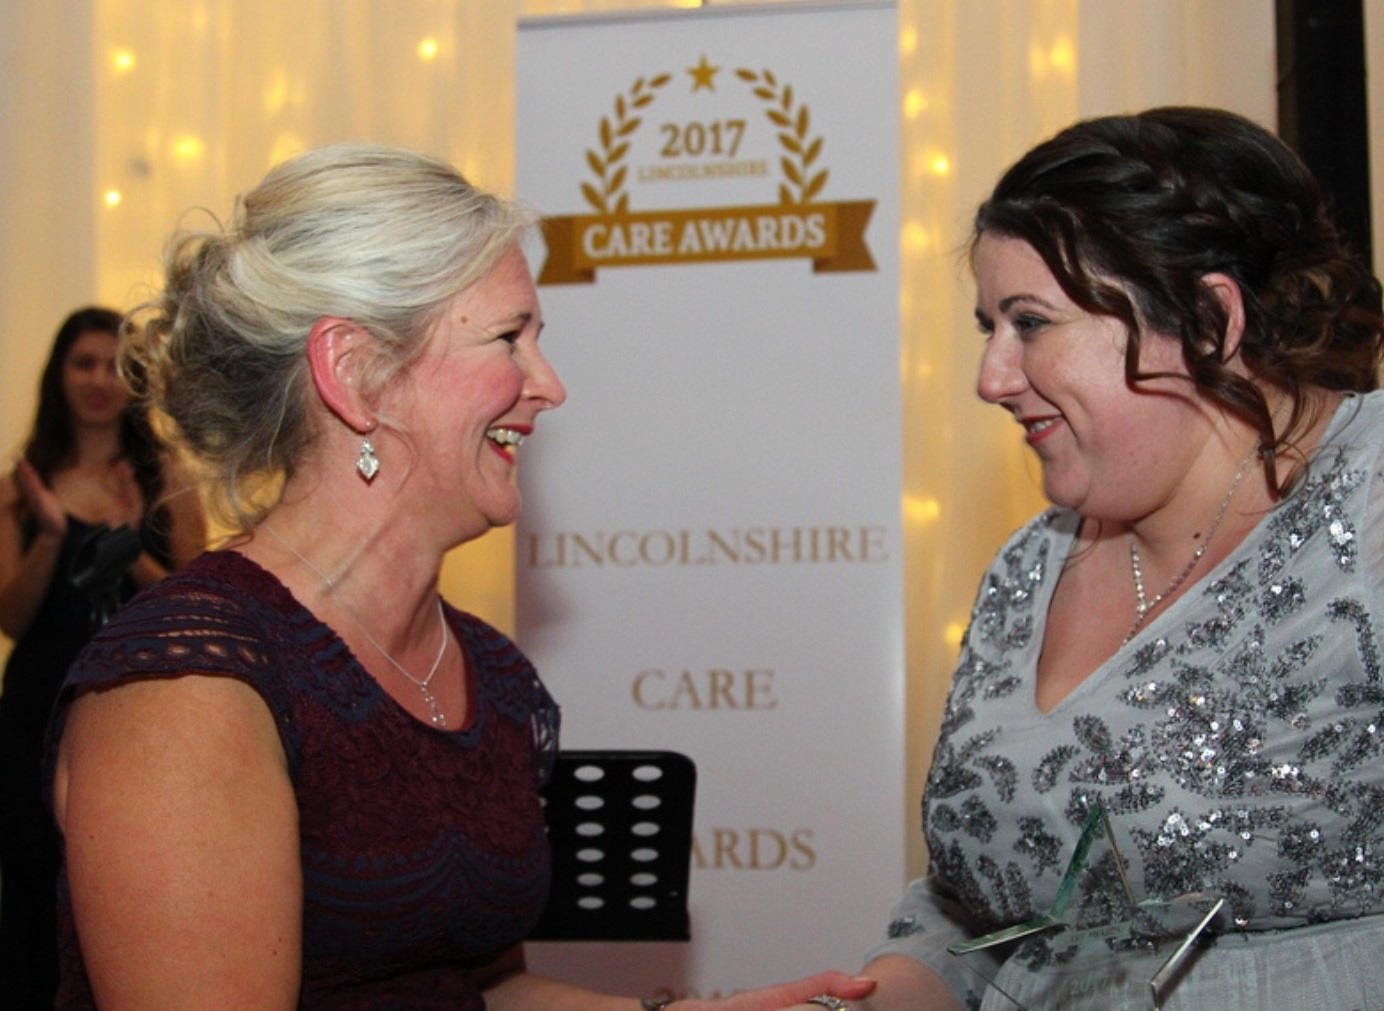 Lincolnshire Care Awards. Photo credit: Shaun Smith, Kamara Photography.